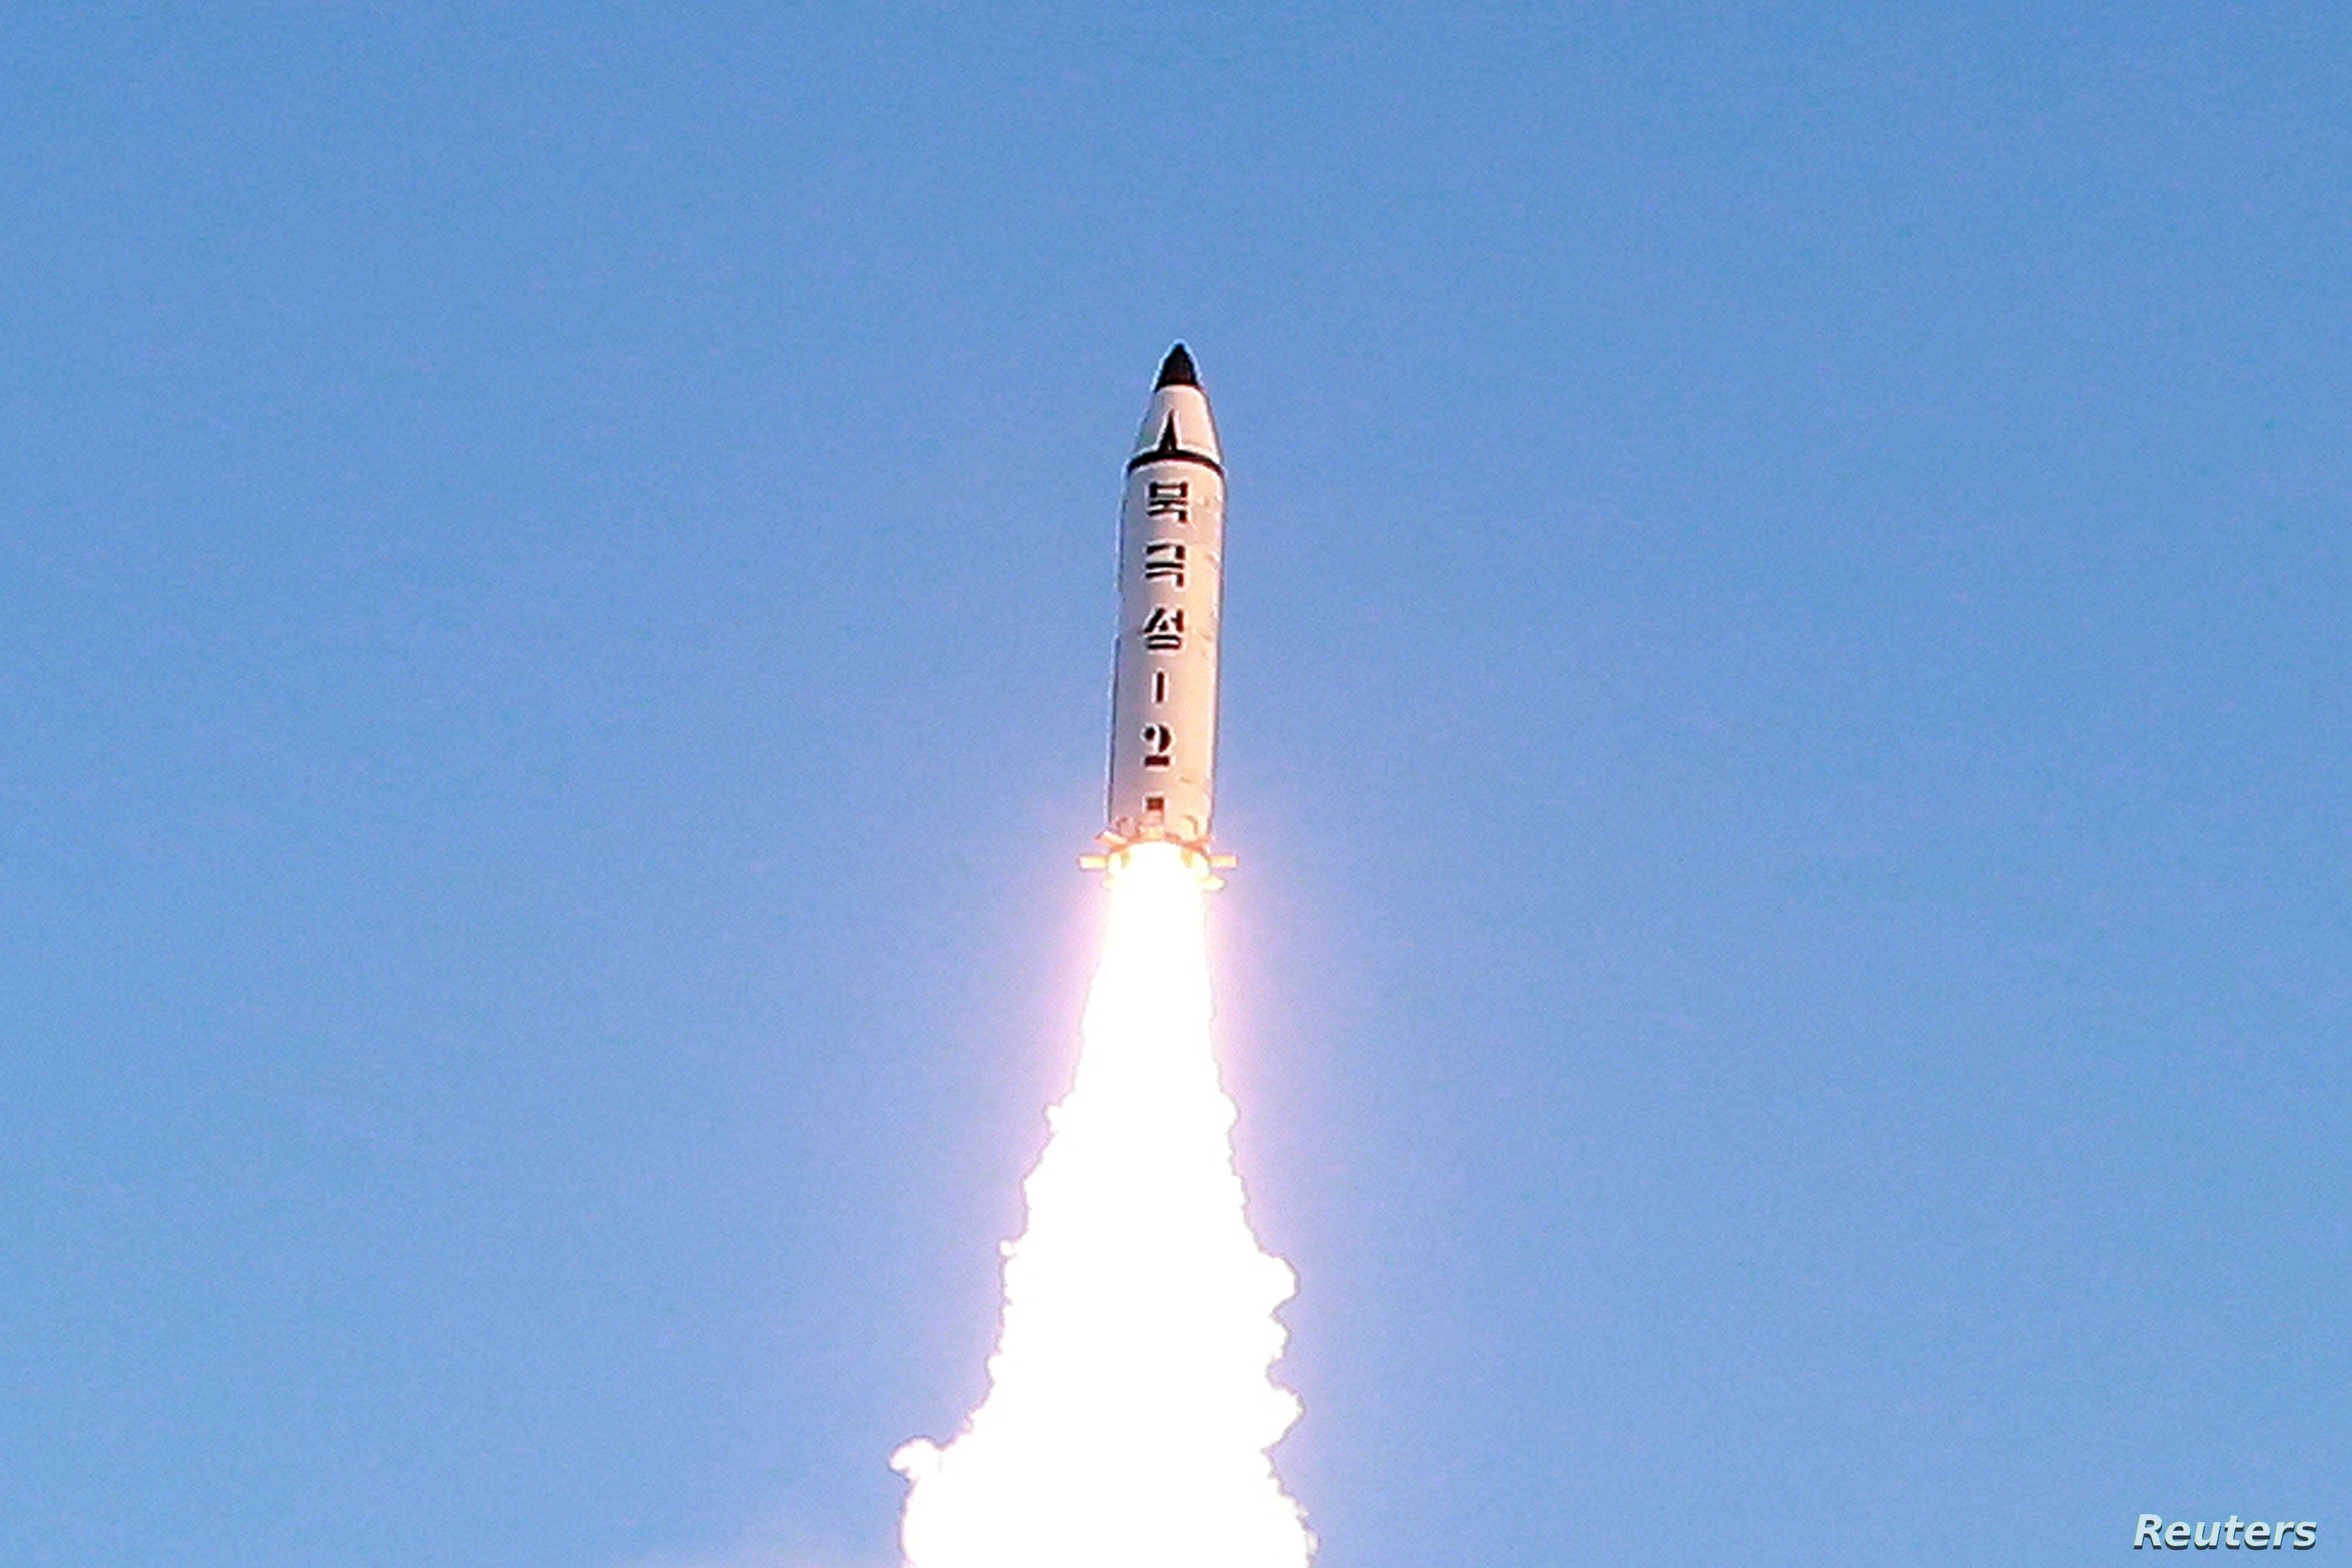 A view of the test-fire of a Pukguksong-2 missile, Feb. 13, 2017.